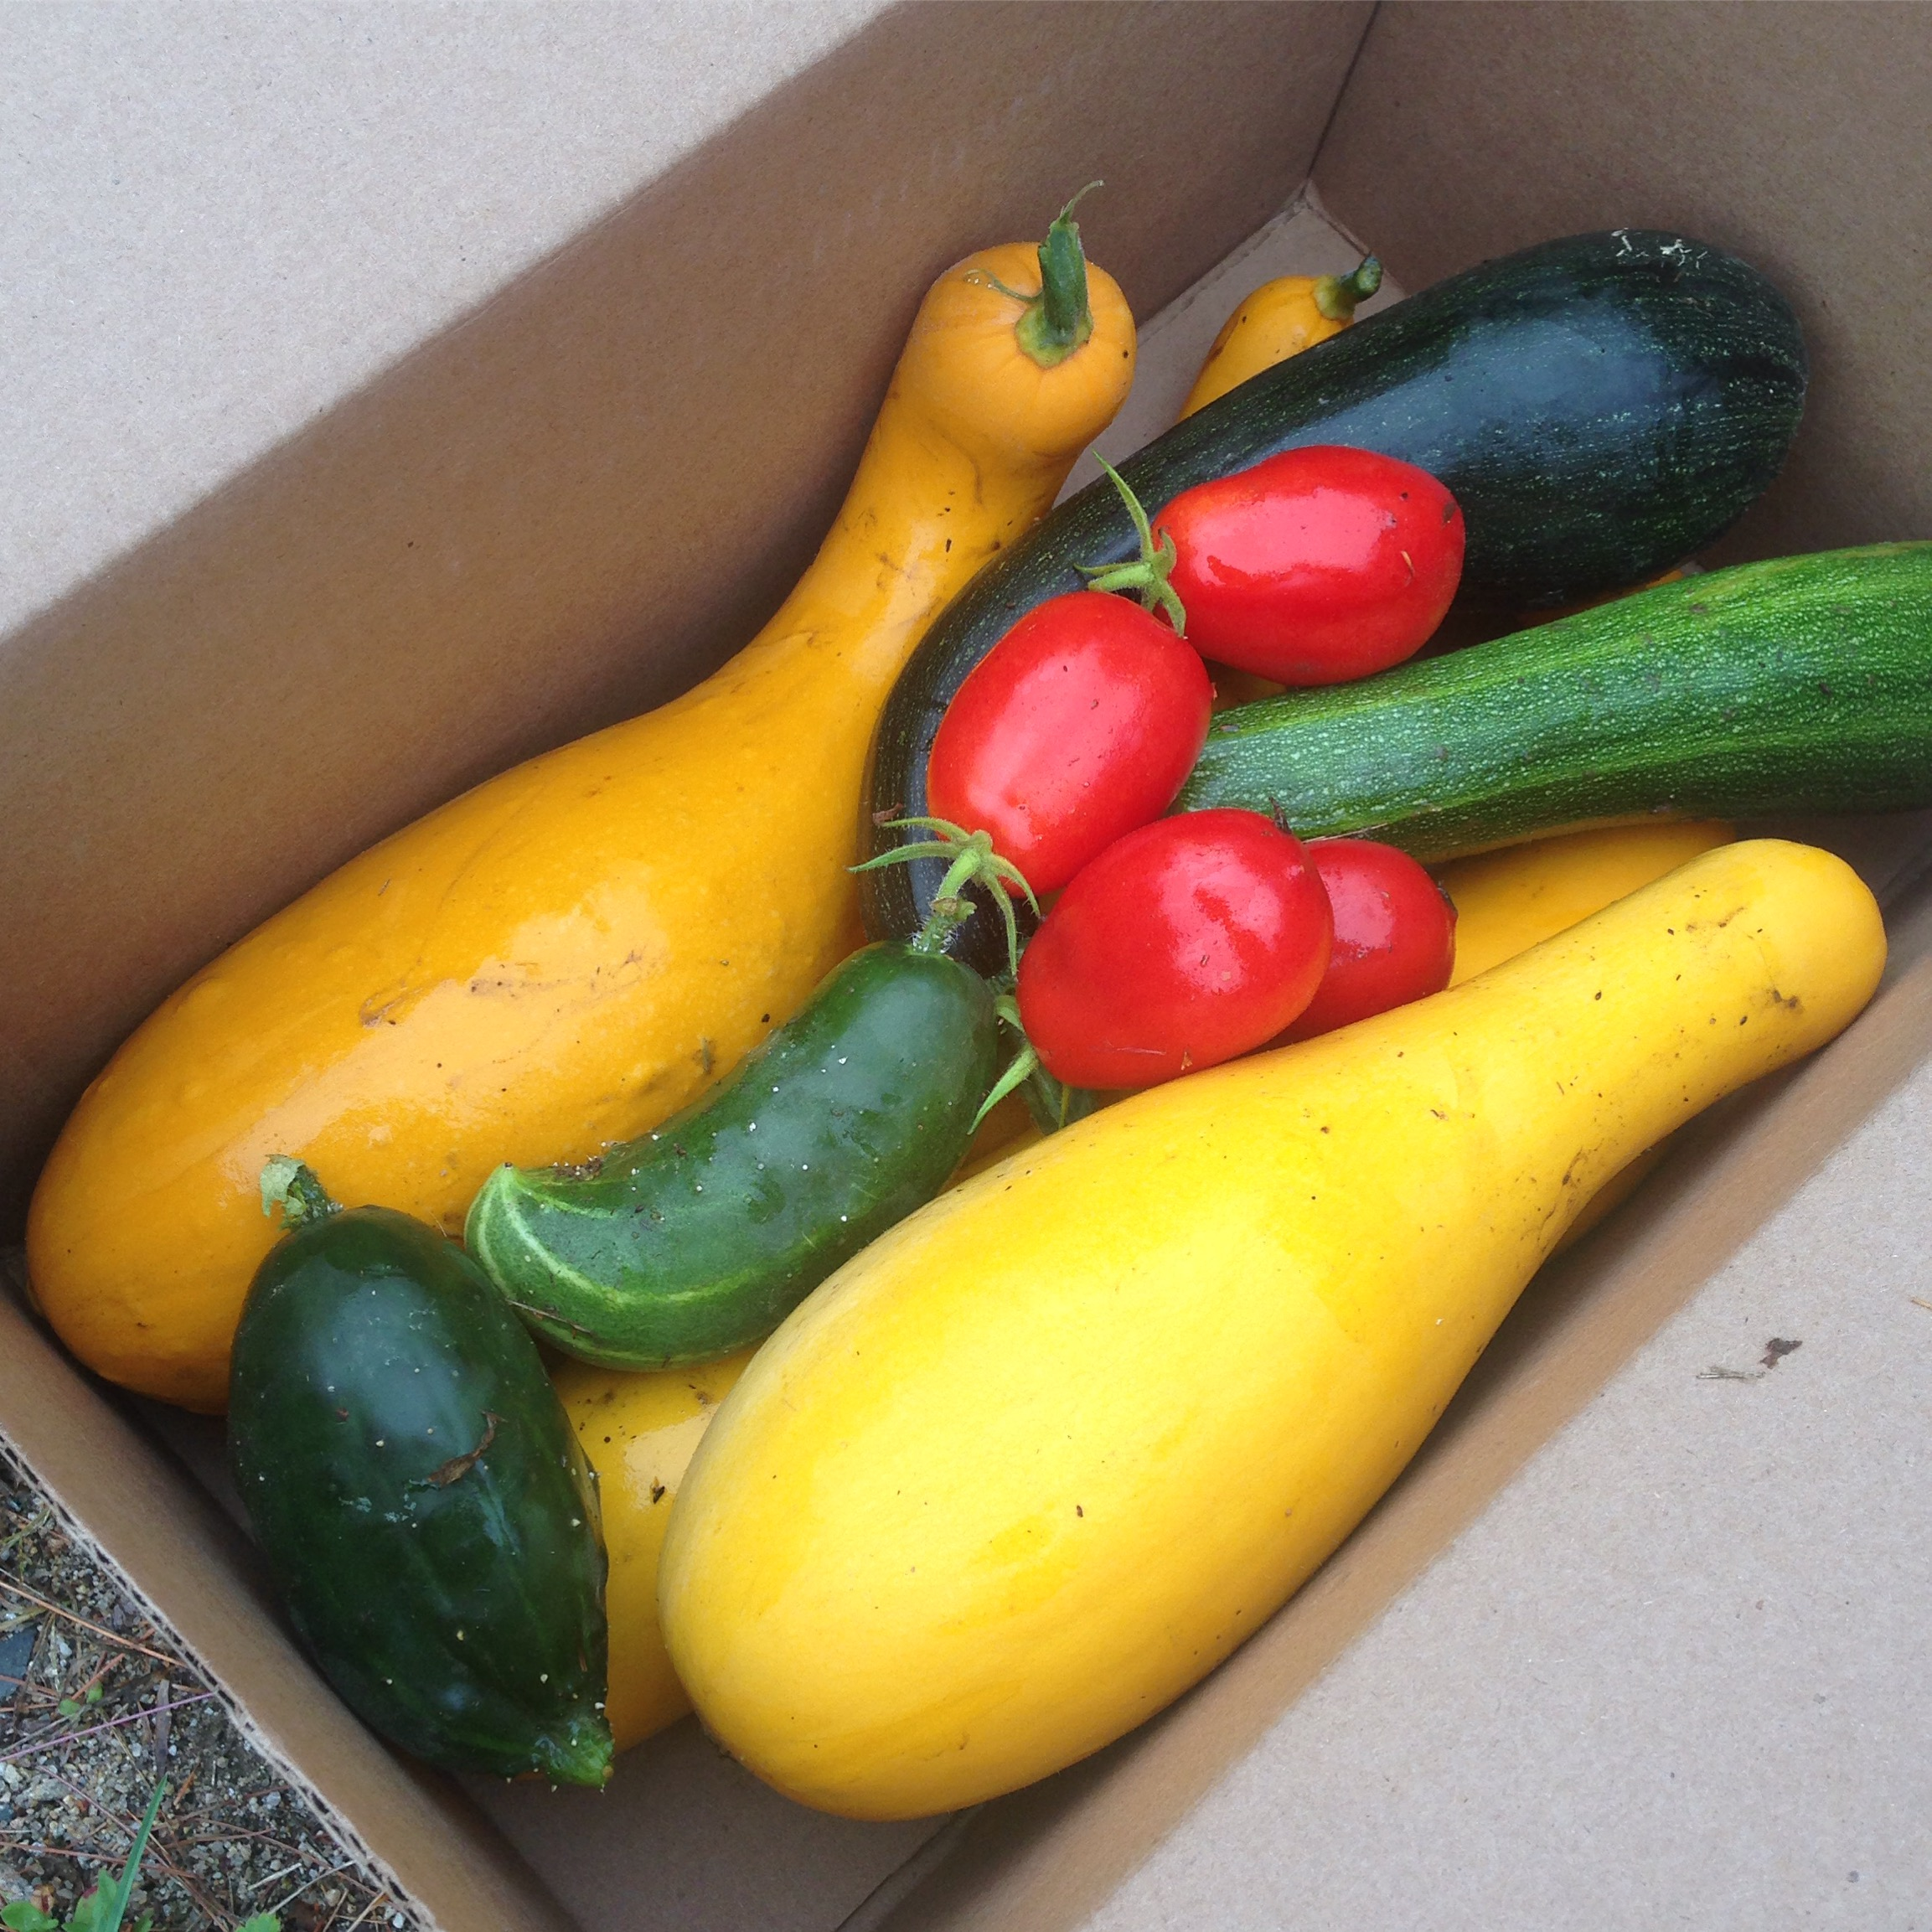 Homegrown veggies to be donated to the local food pantry.